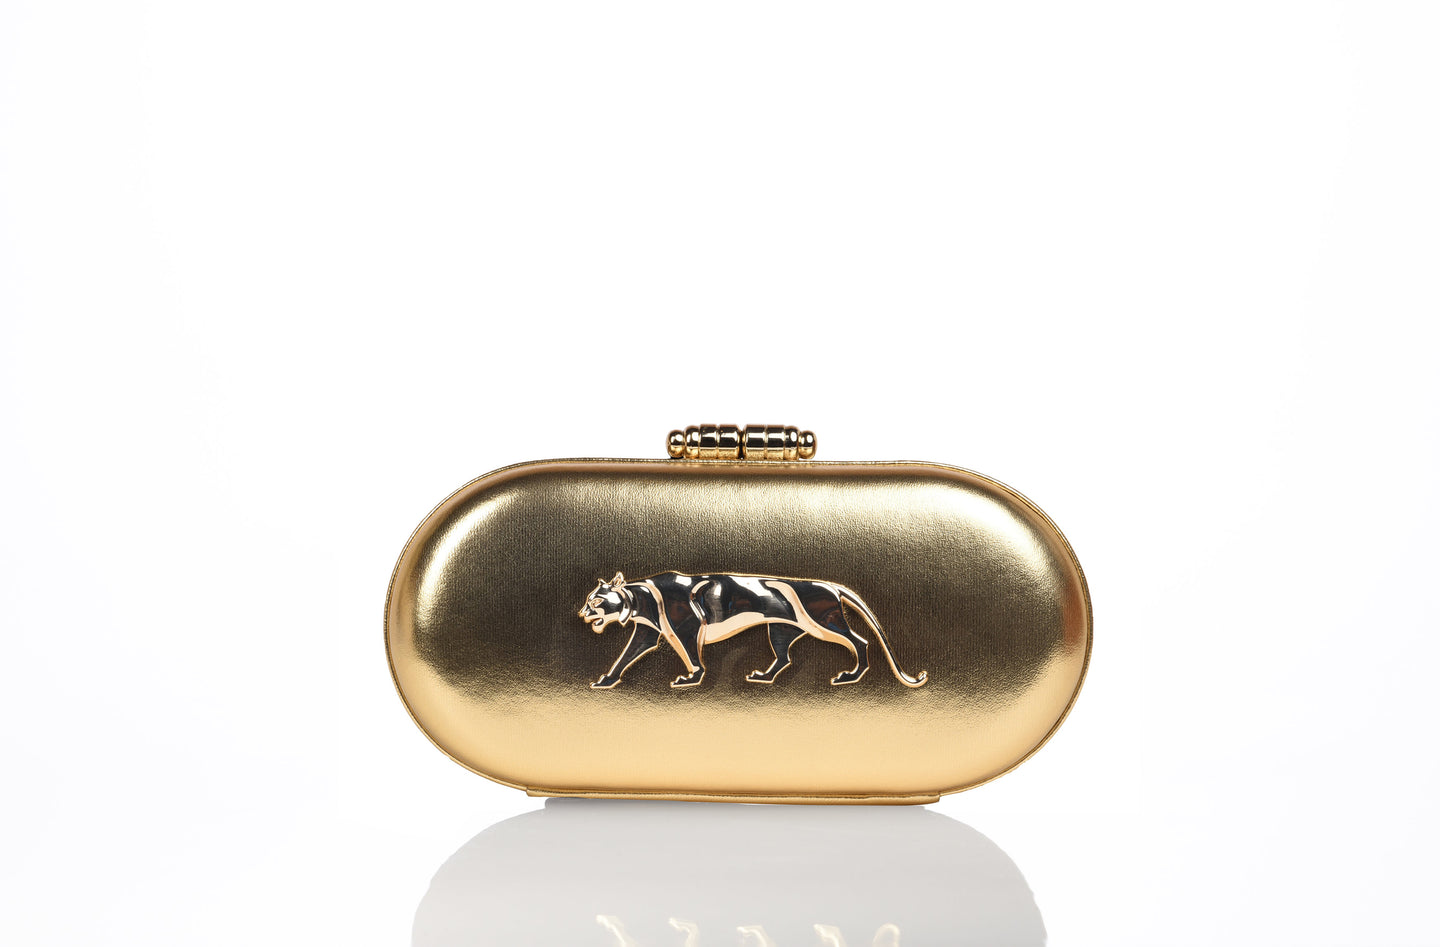 The Royal Bengal Tiger Minaudiere (Mekong) - The Grand Trunk